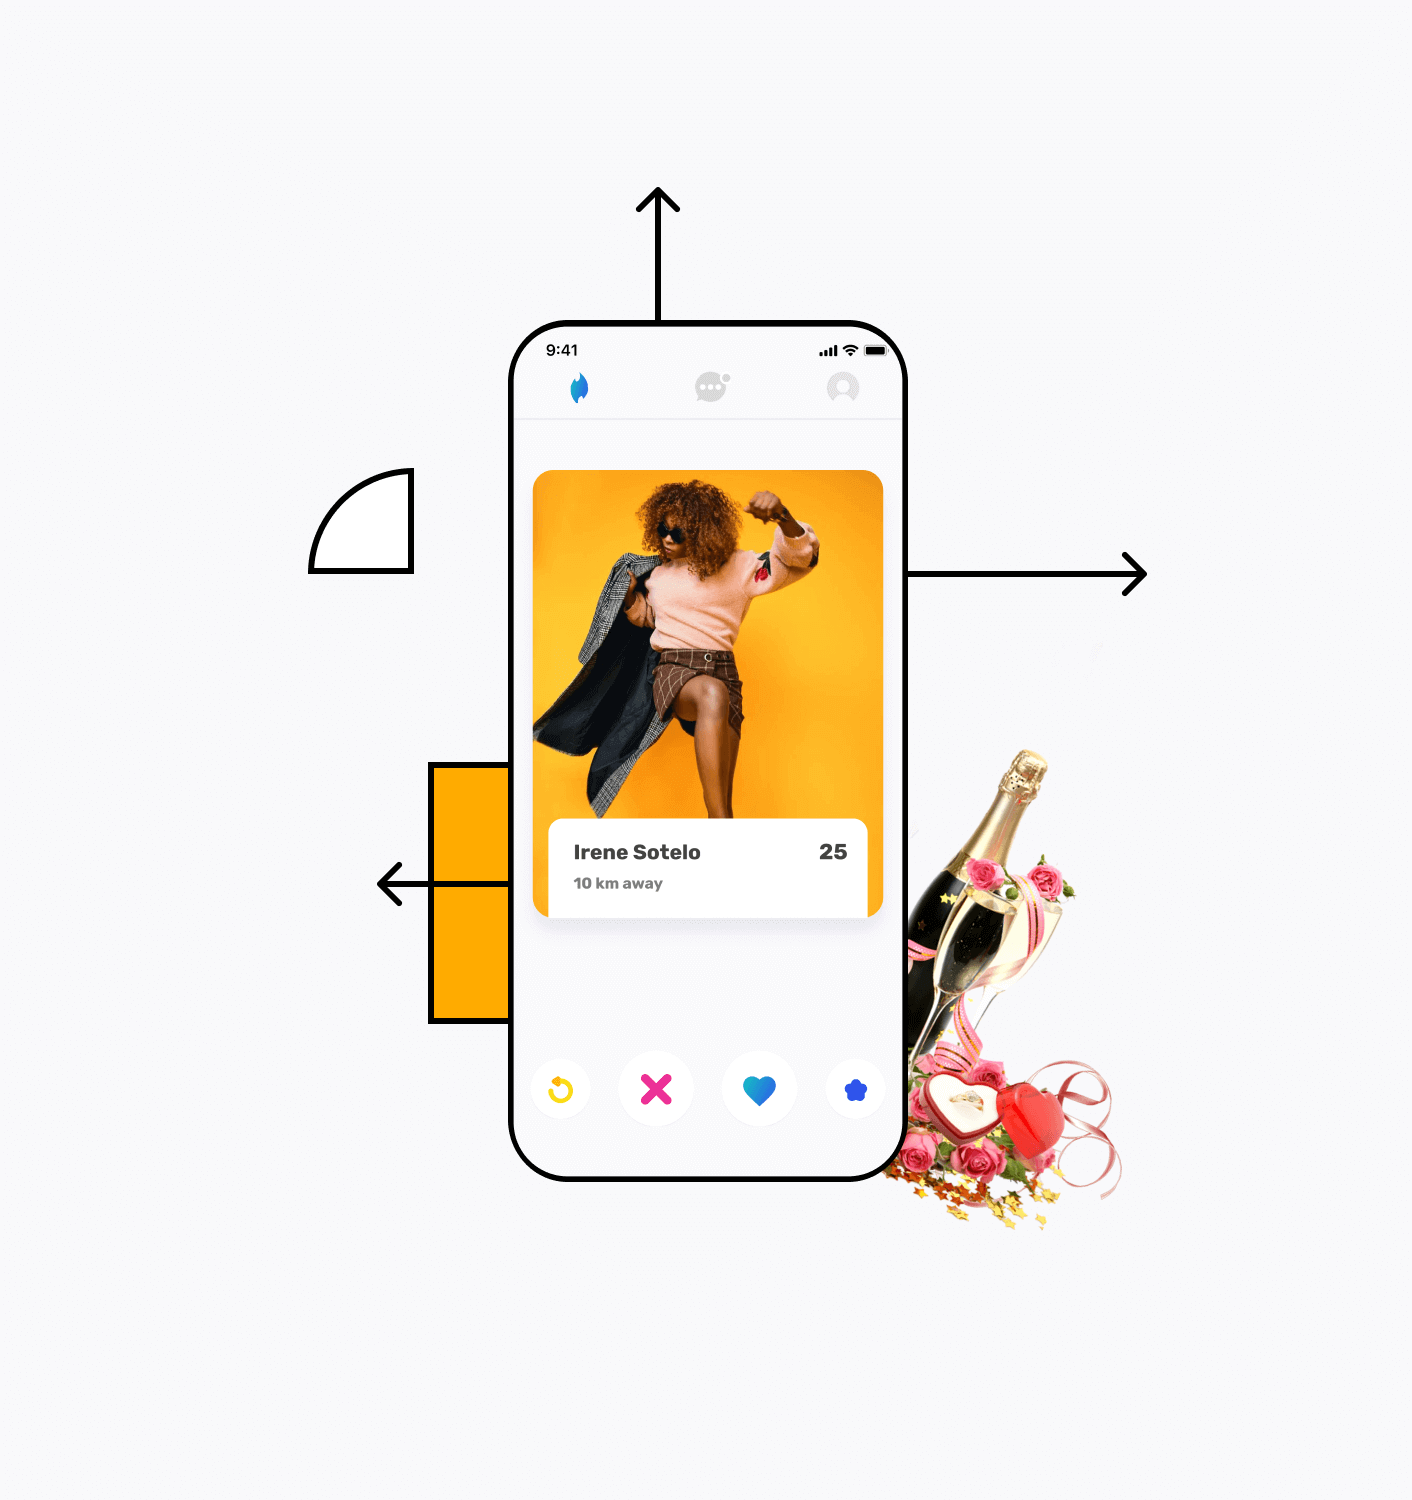 Build a dating app like Tinder